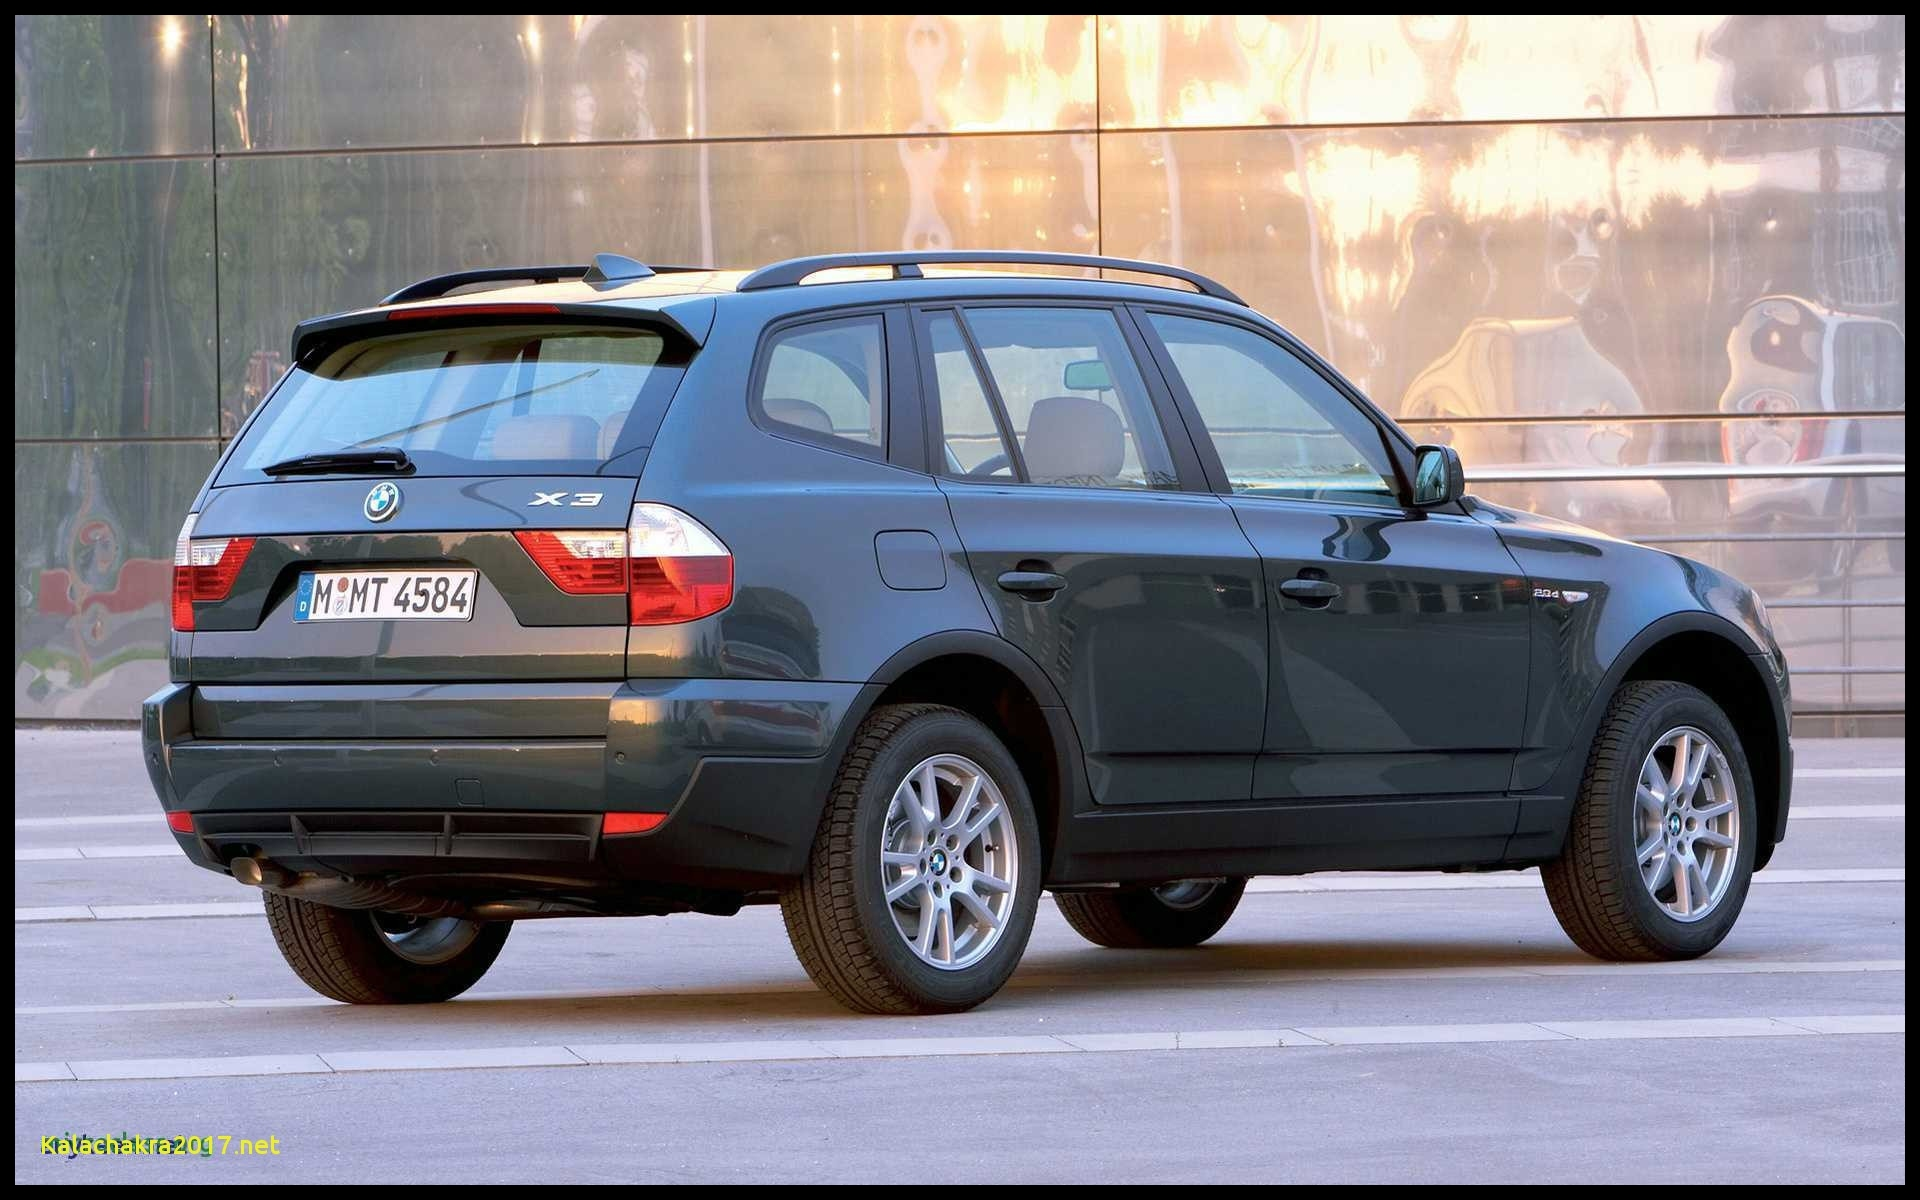 Model Wallpaper Beautiful Bmw Wallpaper Luxury Bmw X3 2 0d 2007 Amazing Beautiful Cars Wallpapers